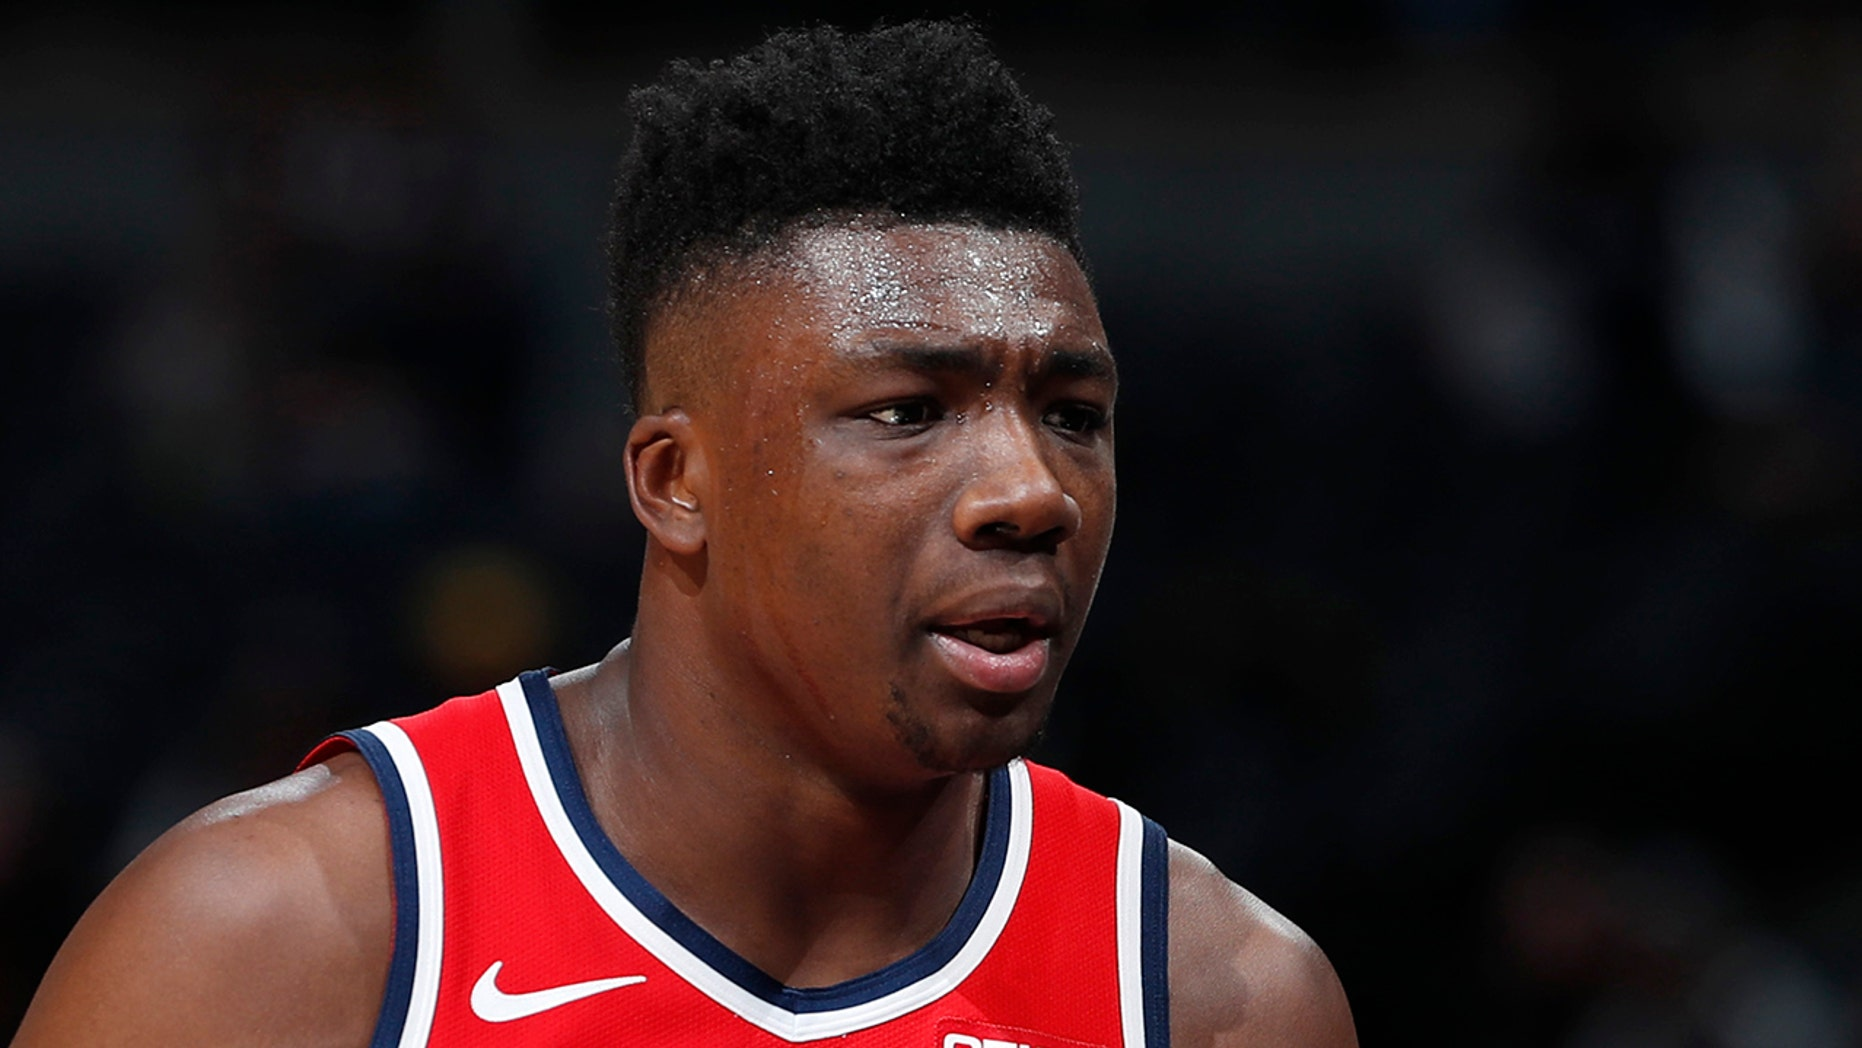 Washington Wizards center Thomas Bryant heads to the bench after drawing two quick fouls against the Denver Nuggets in the first half of an NBA basketball game Tuesday, Nov. 26, 2019, in Denver. (AP Photo/David Zalubowski)